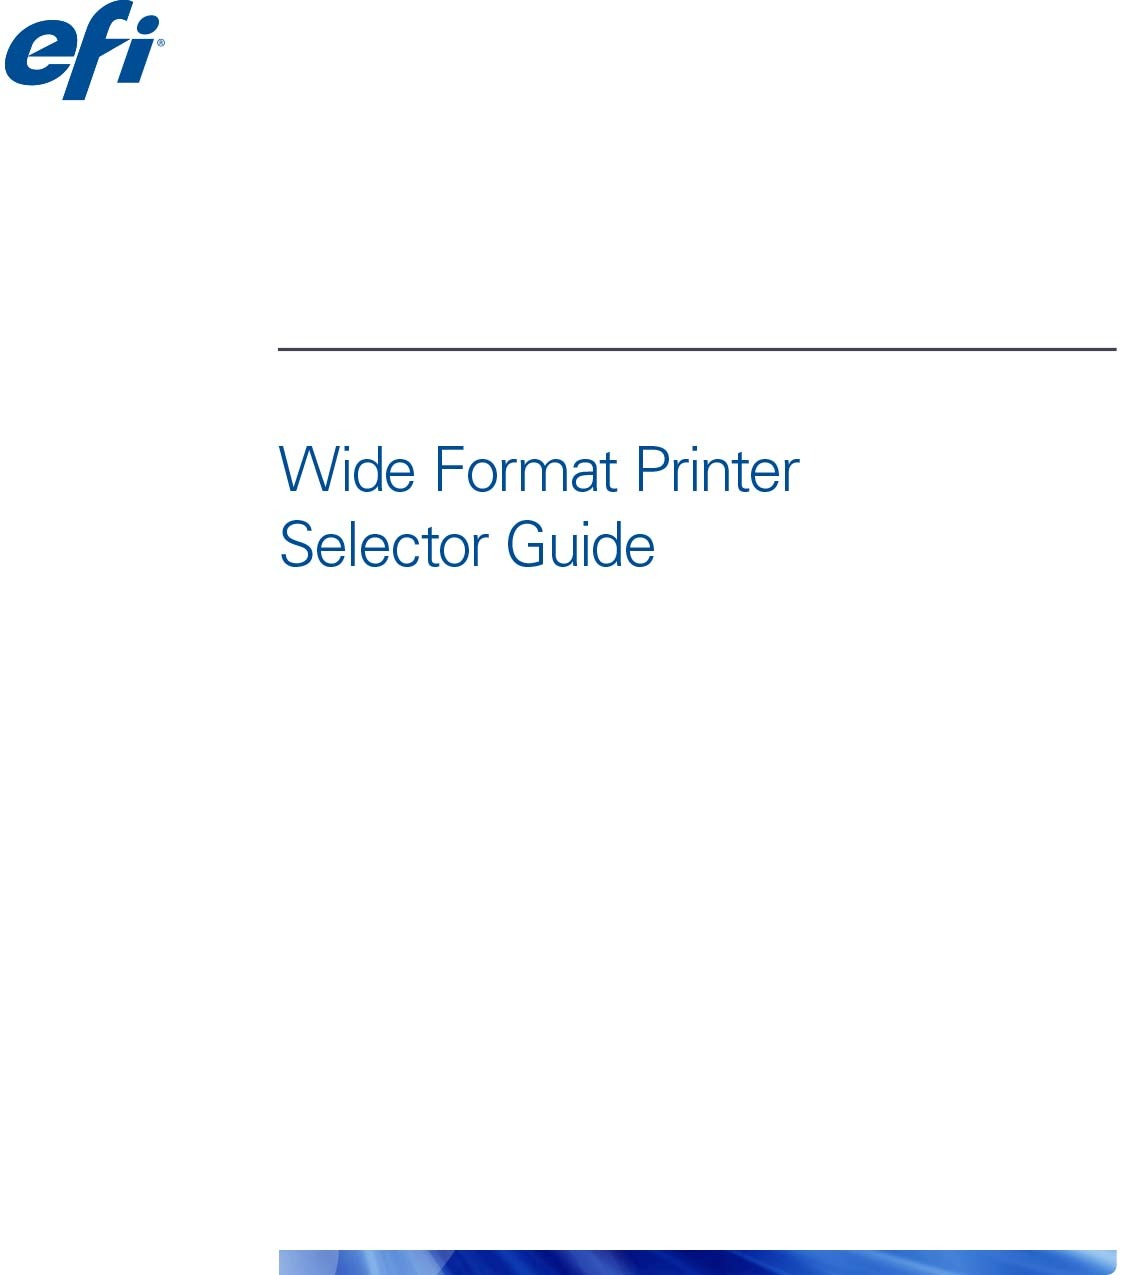 EFI Wide Format Selector Guide 1 - Resources